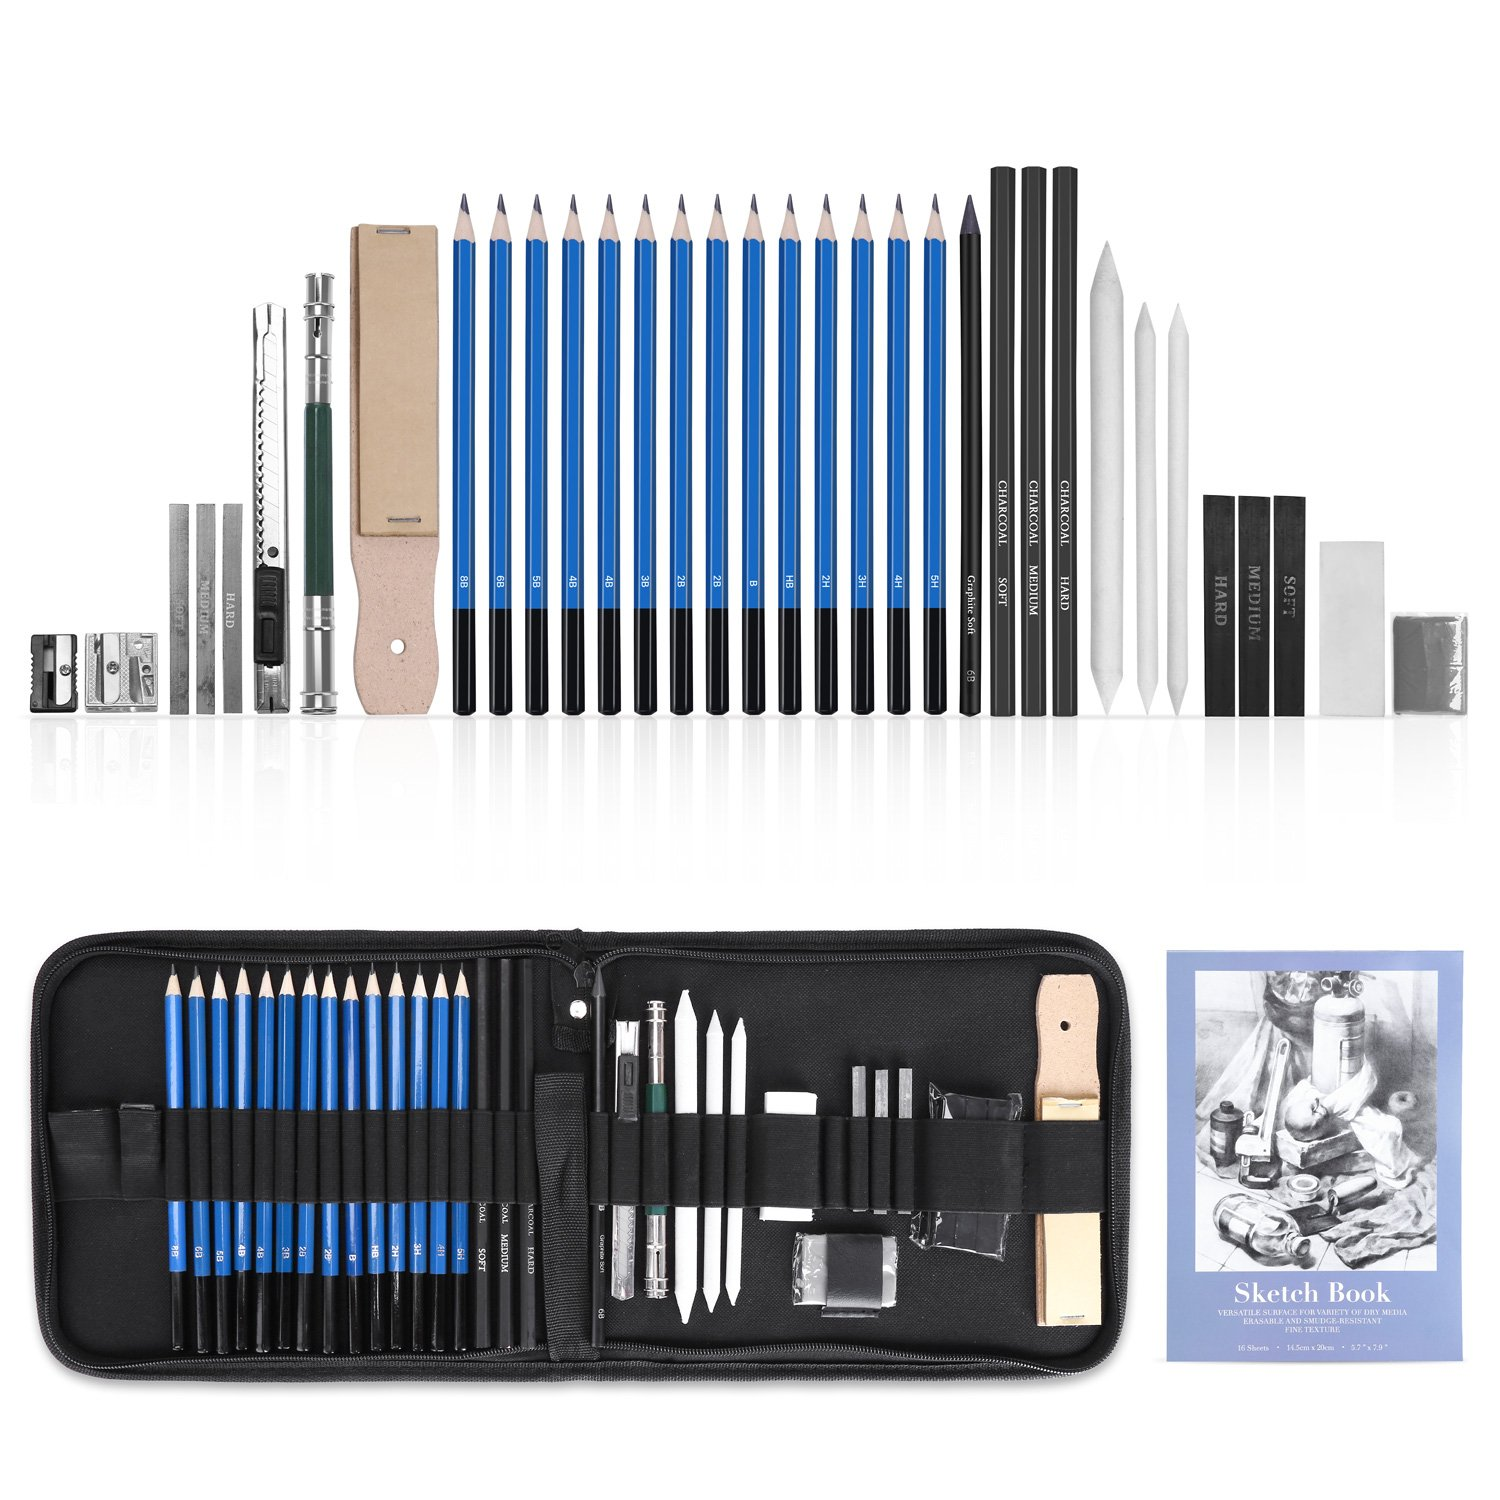 GHB 36Pcs Drawing and Sketching Pencils Set Graphite Charcoal Pencils for Drawing with Portable Kit Bag Painting Drawing and Art Supplies